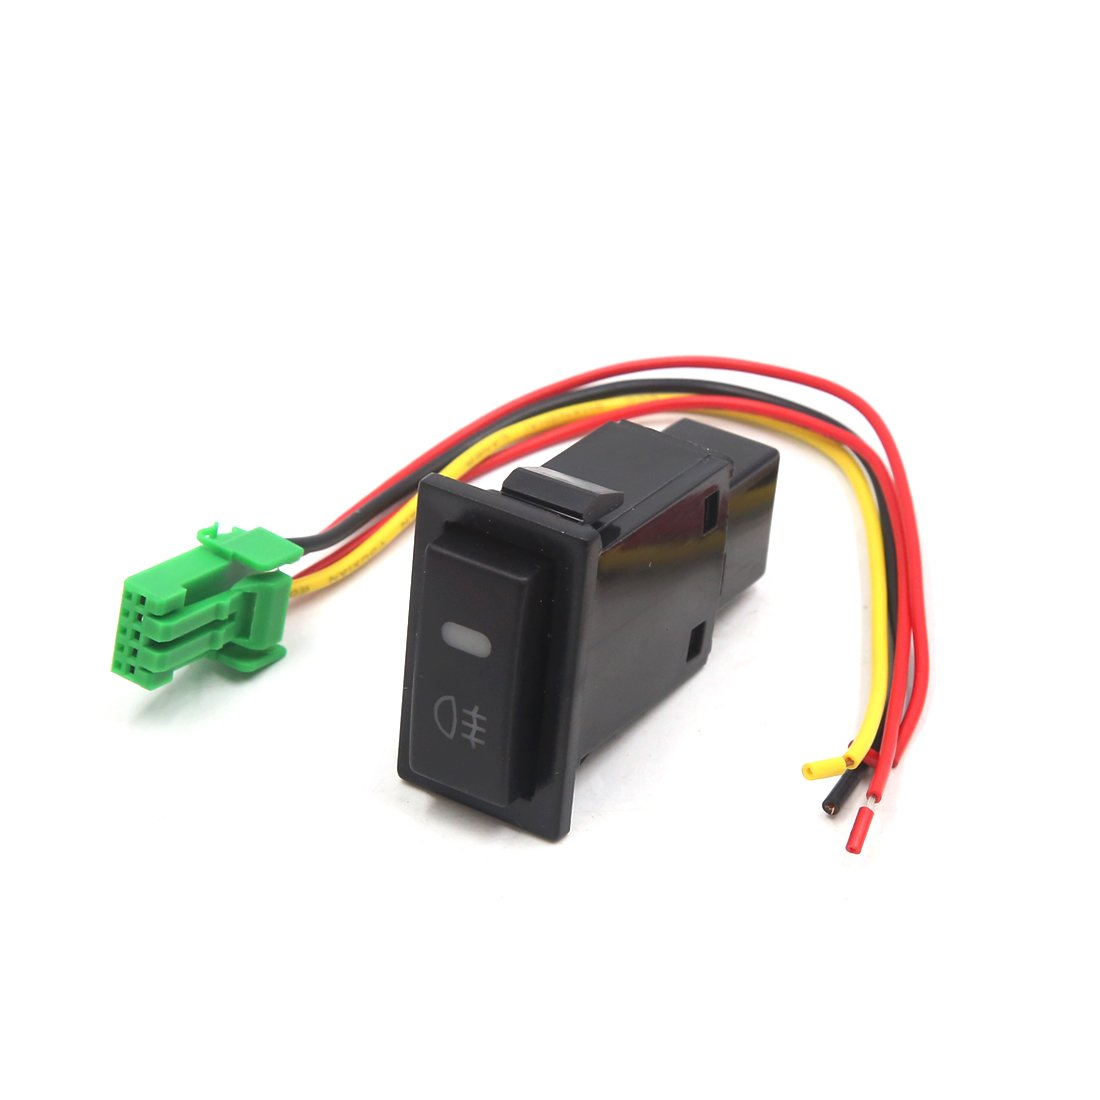 Uxcell a17052600ux0769 Car Fog Light Switch